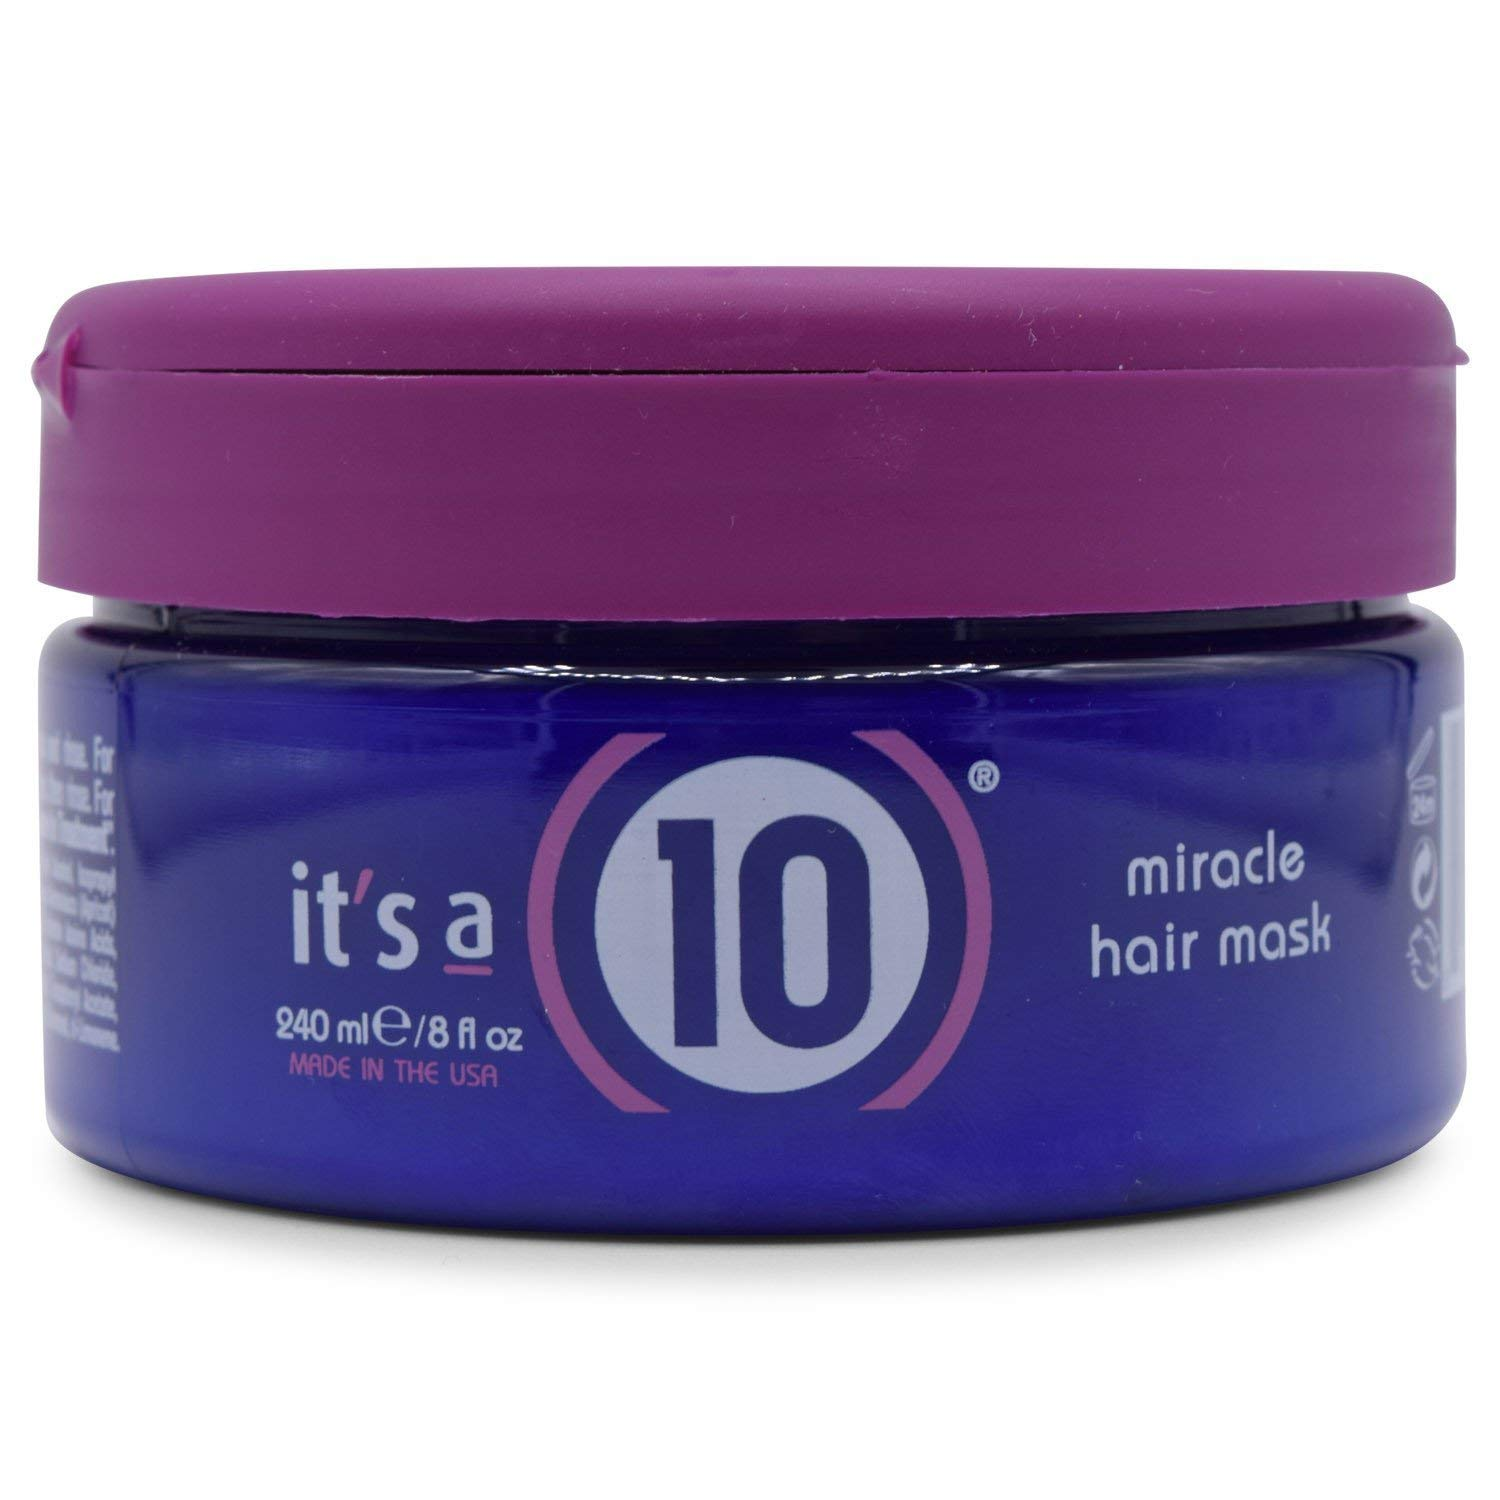 It's a 10 Miracle Hair Mask 8oz/240ml